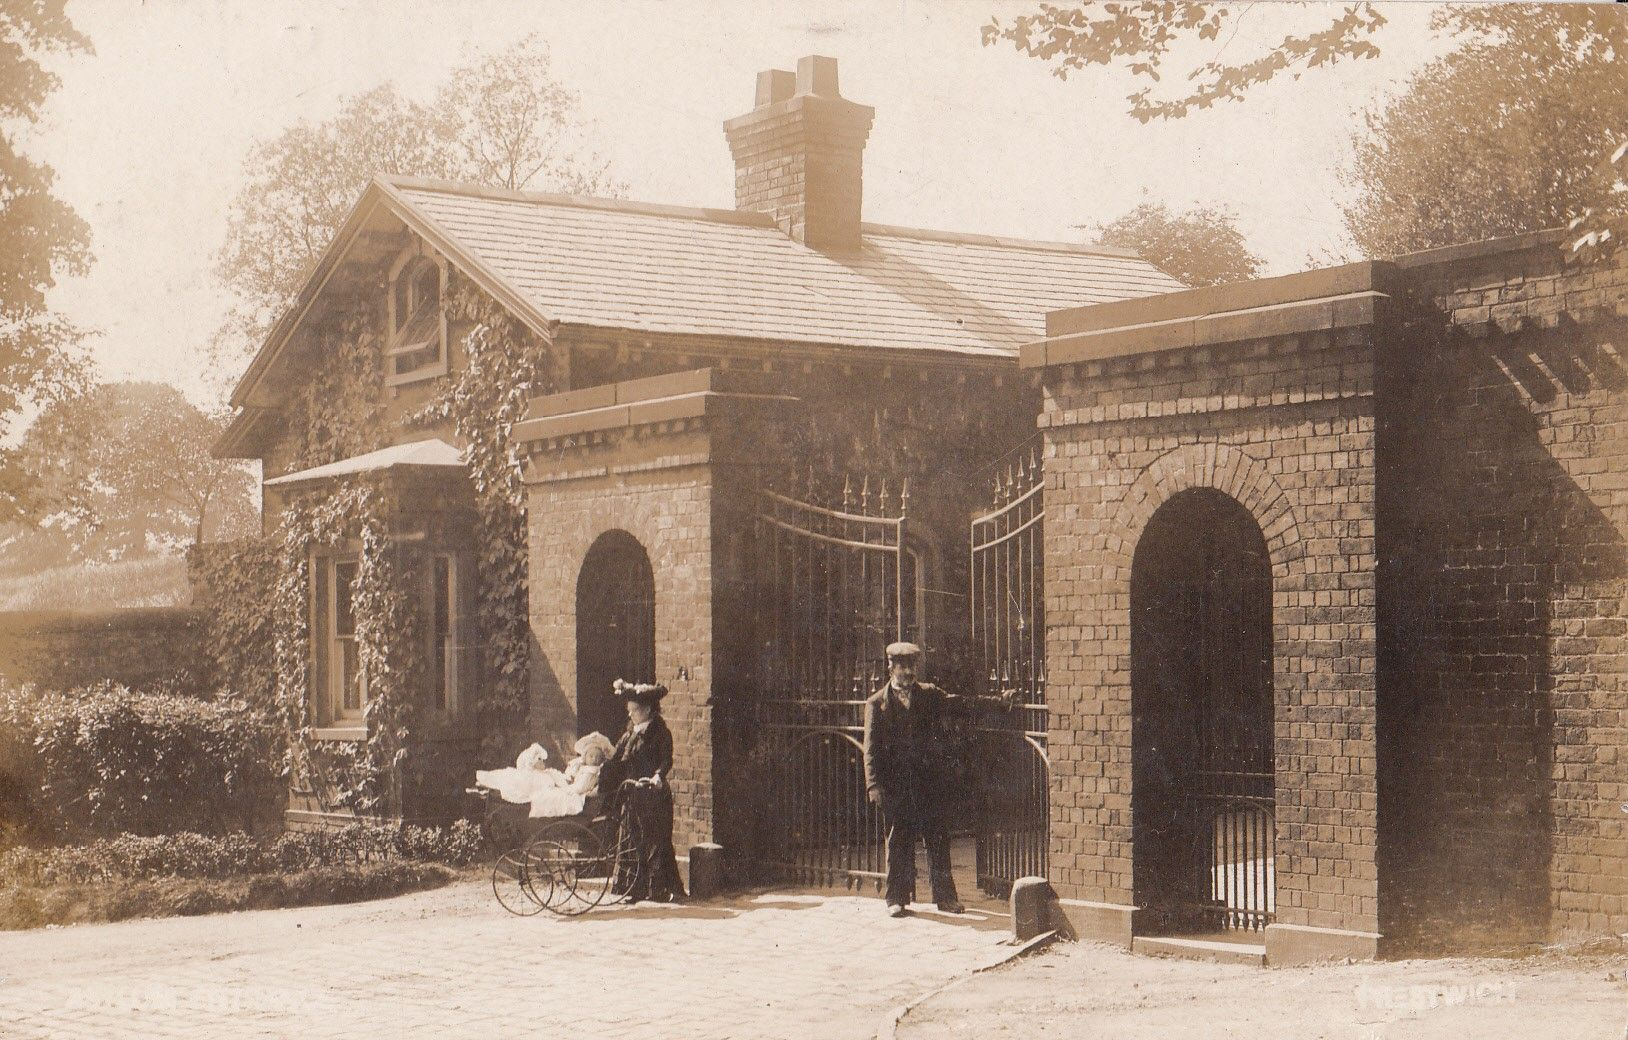 The lodge gates of Prestwich Asylum, Lancashire, circa 1905